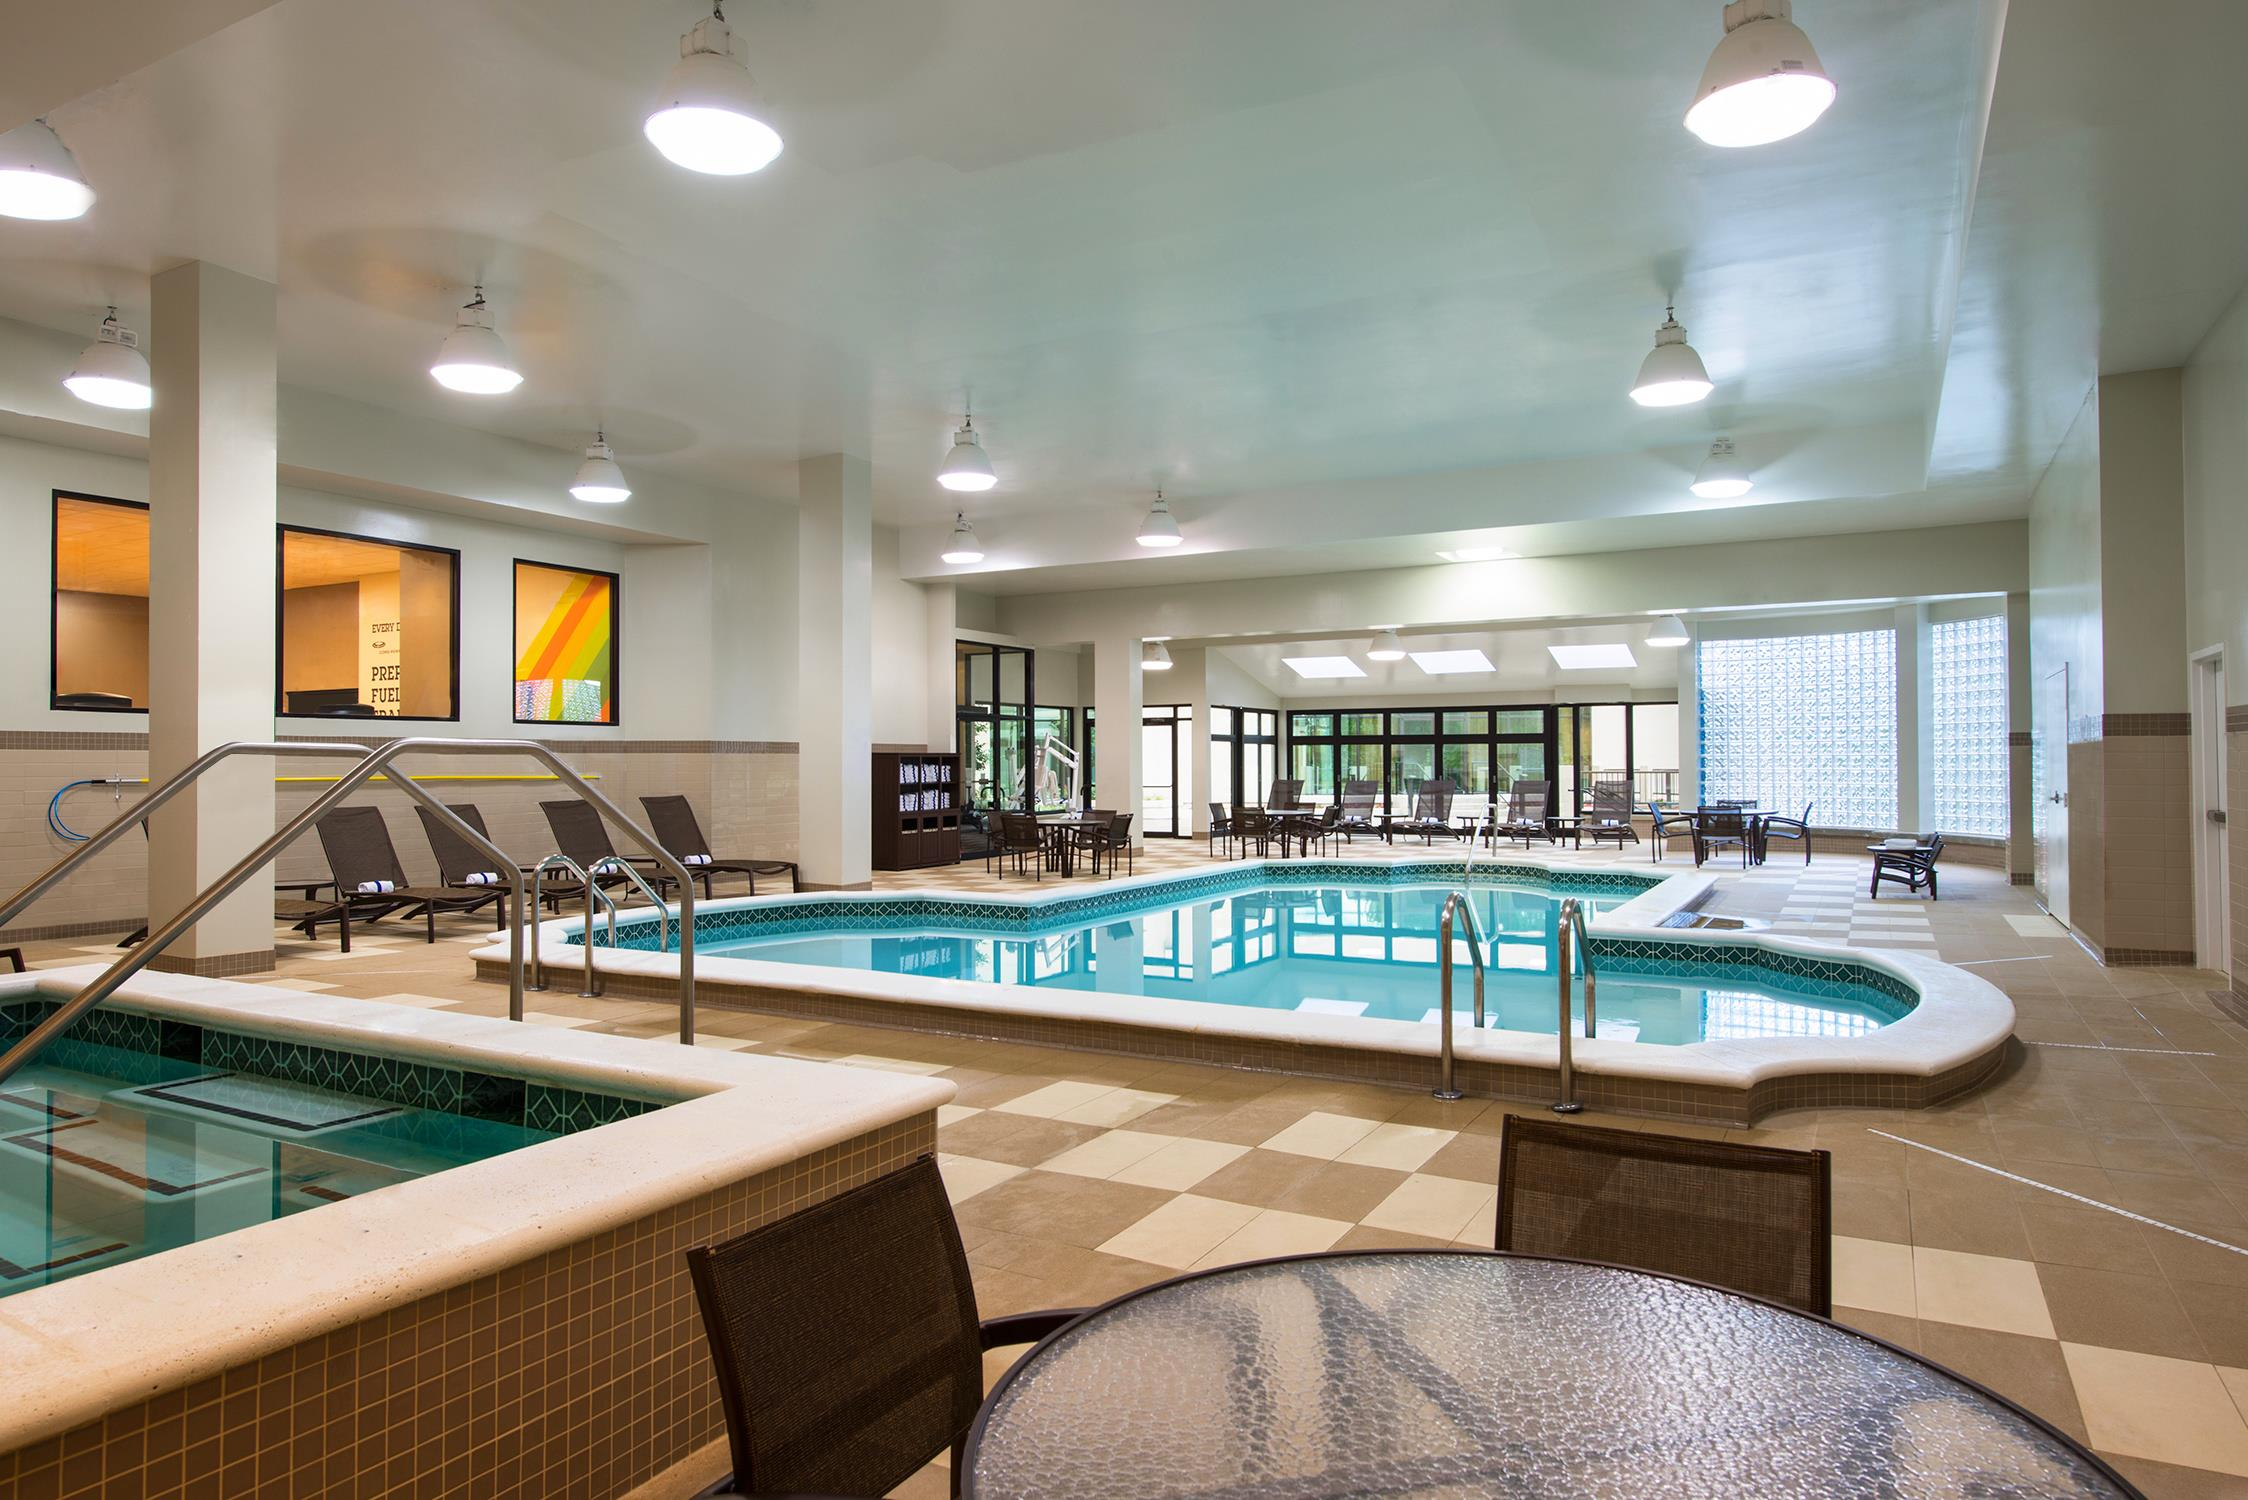 Sheraton wilmington south hotel new castle delaware de - Swimming pool discounters new castle pa ...